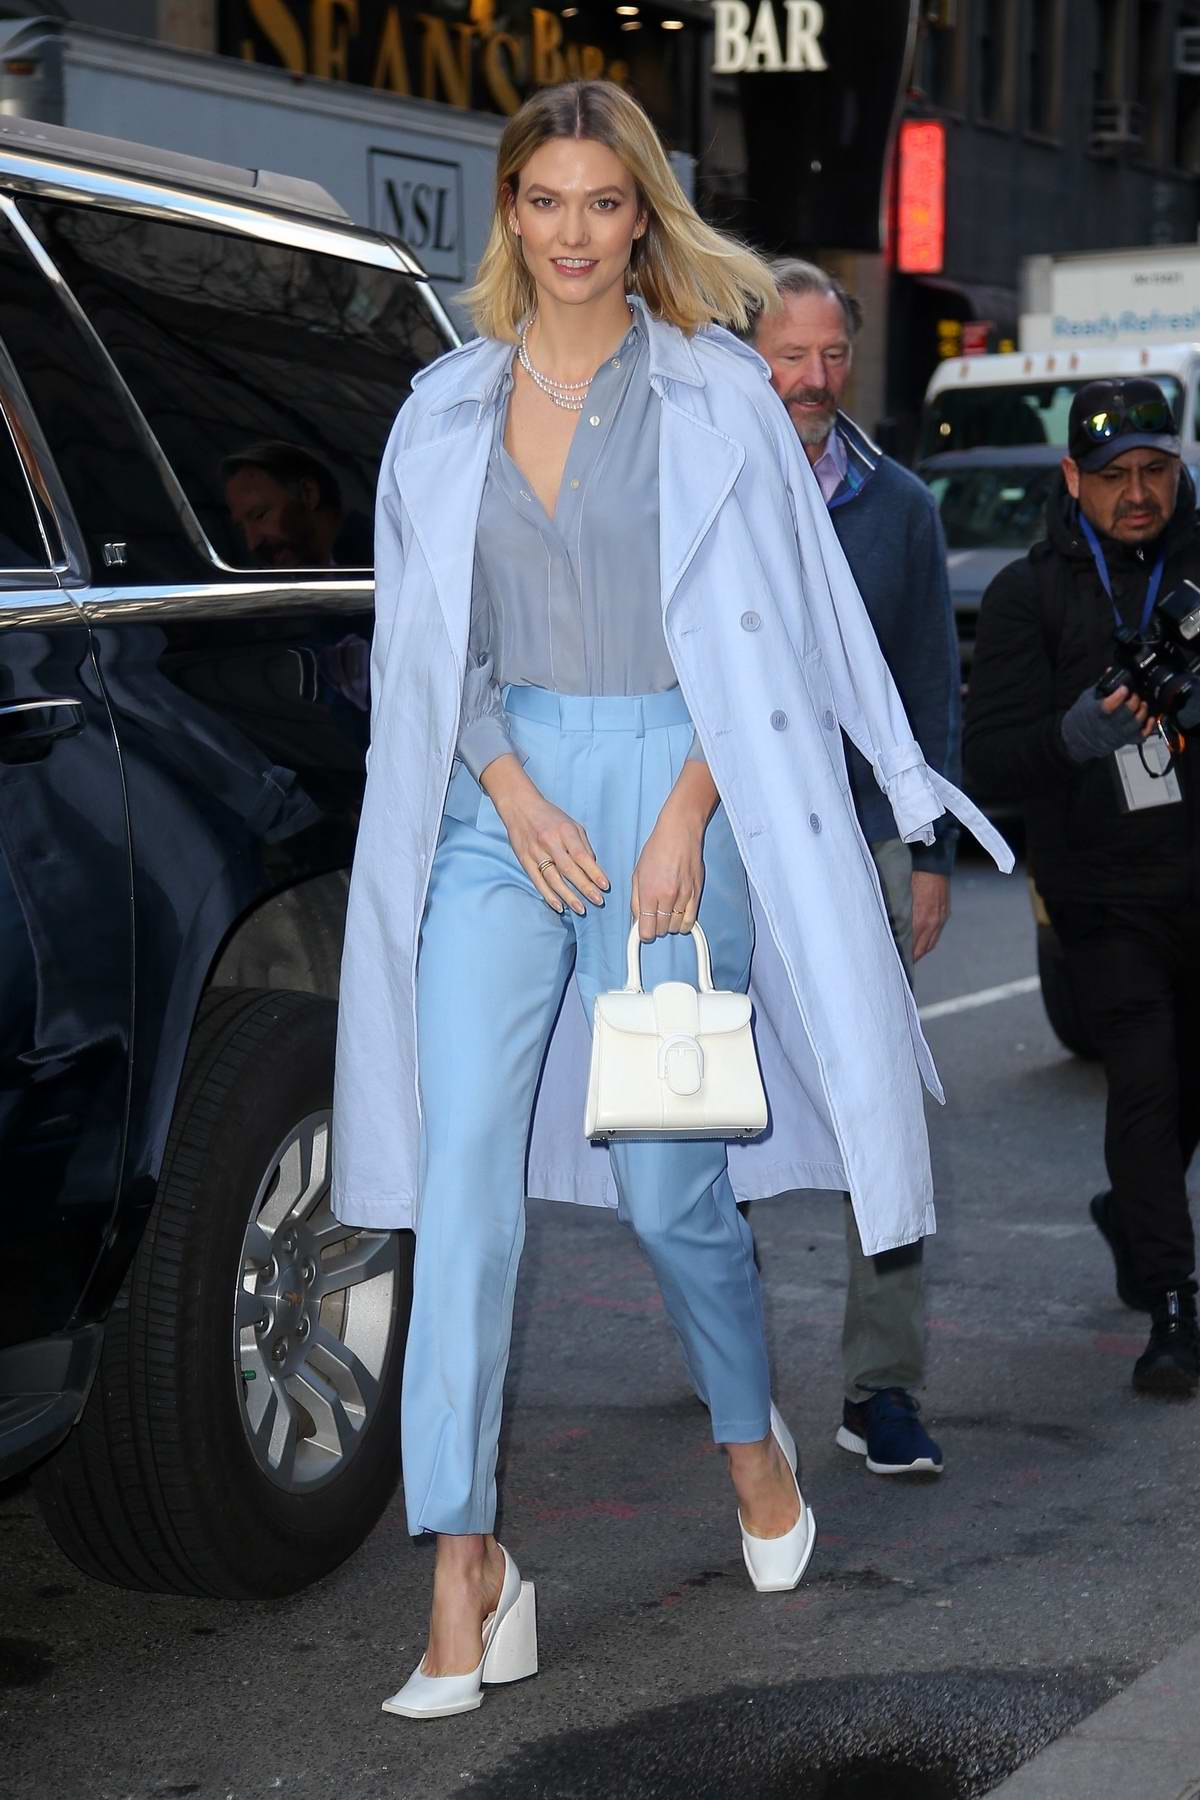 Karlie Kloss looks chic in pastel blue ensemble while visiting the 'Today' Show in New York City